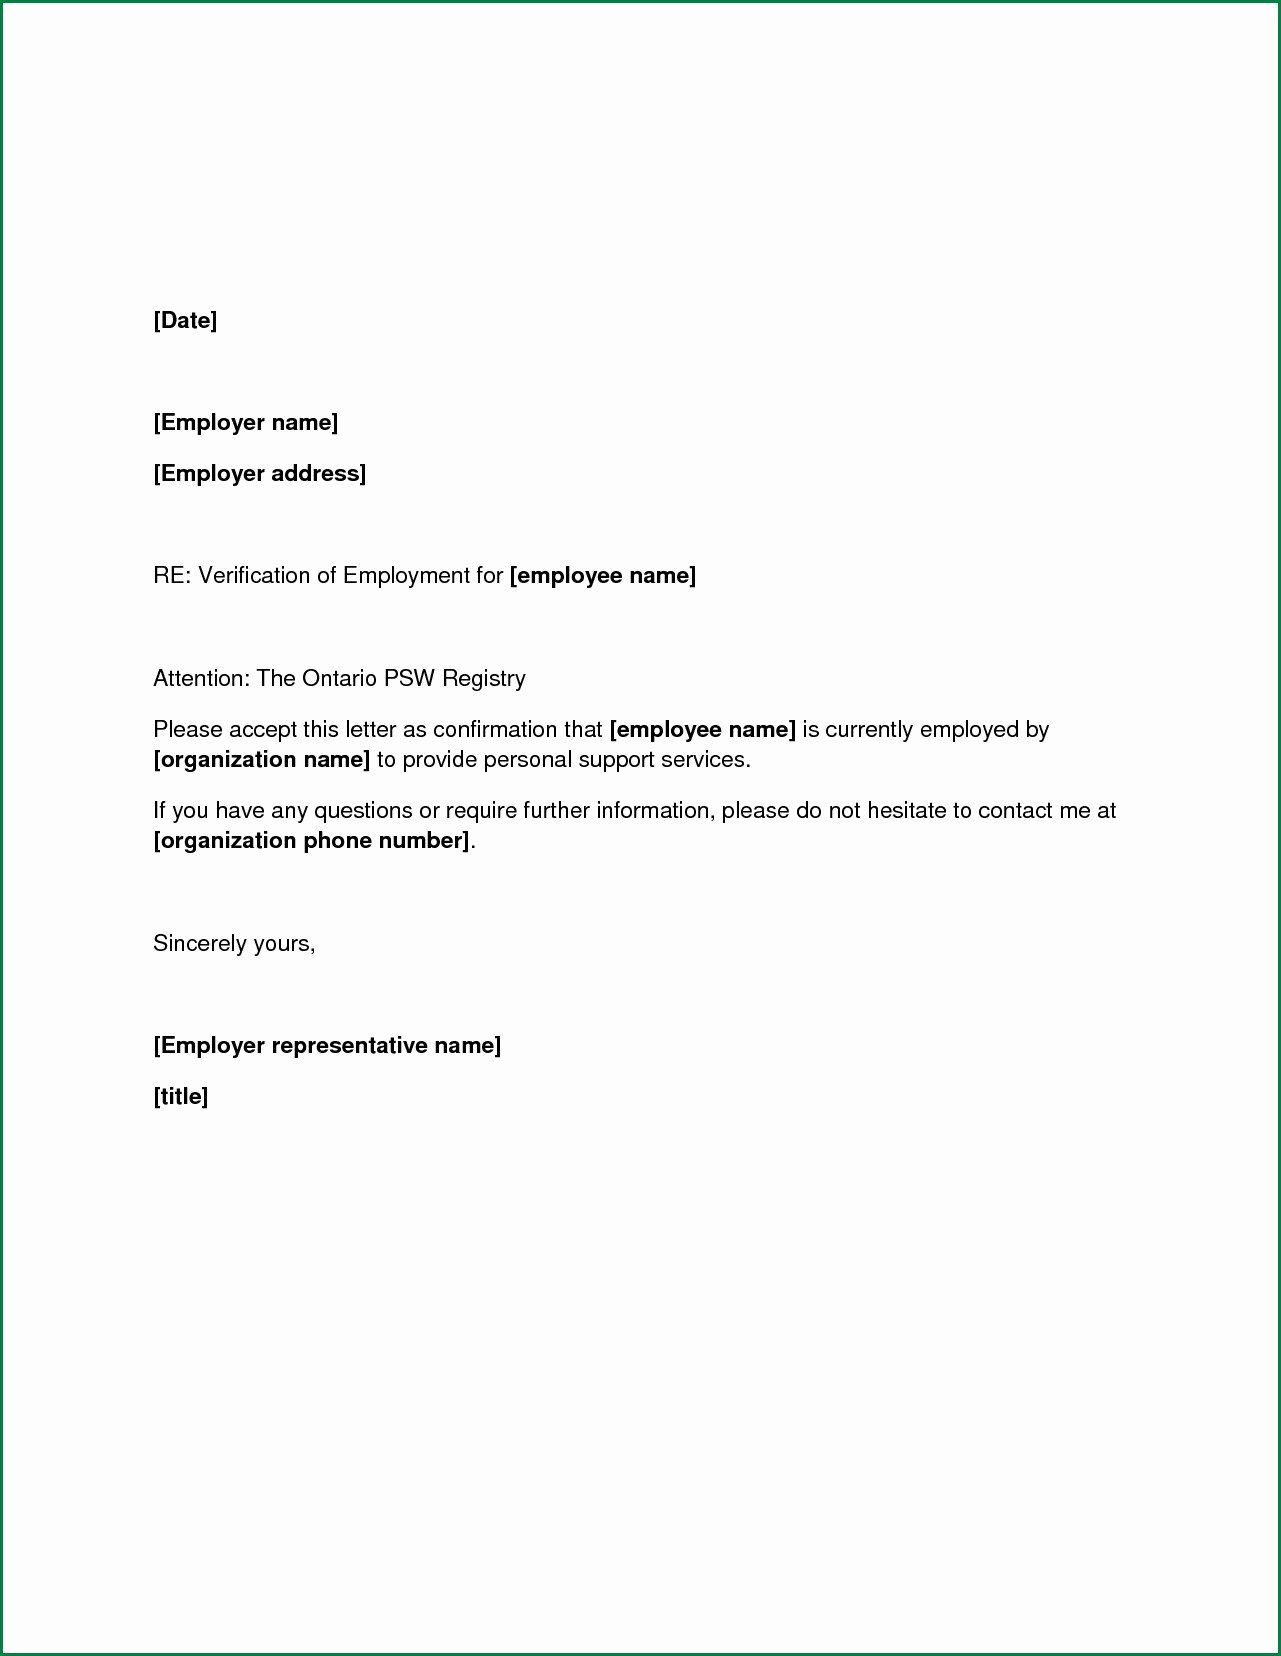 Sample Letter for Employee Beautiful No Longer Employed Letter Sample